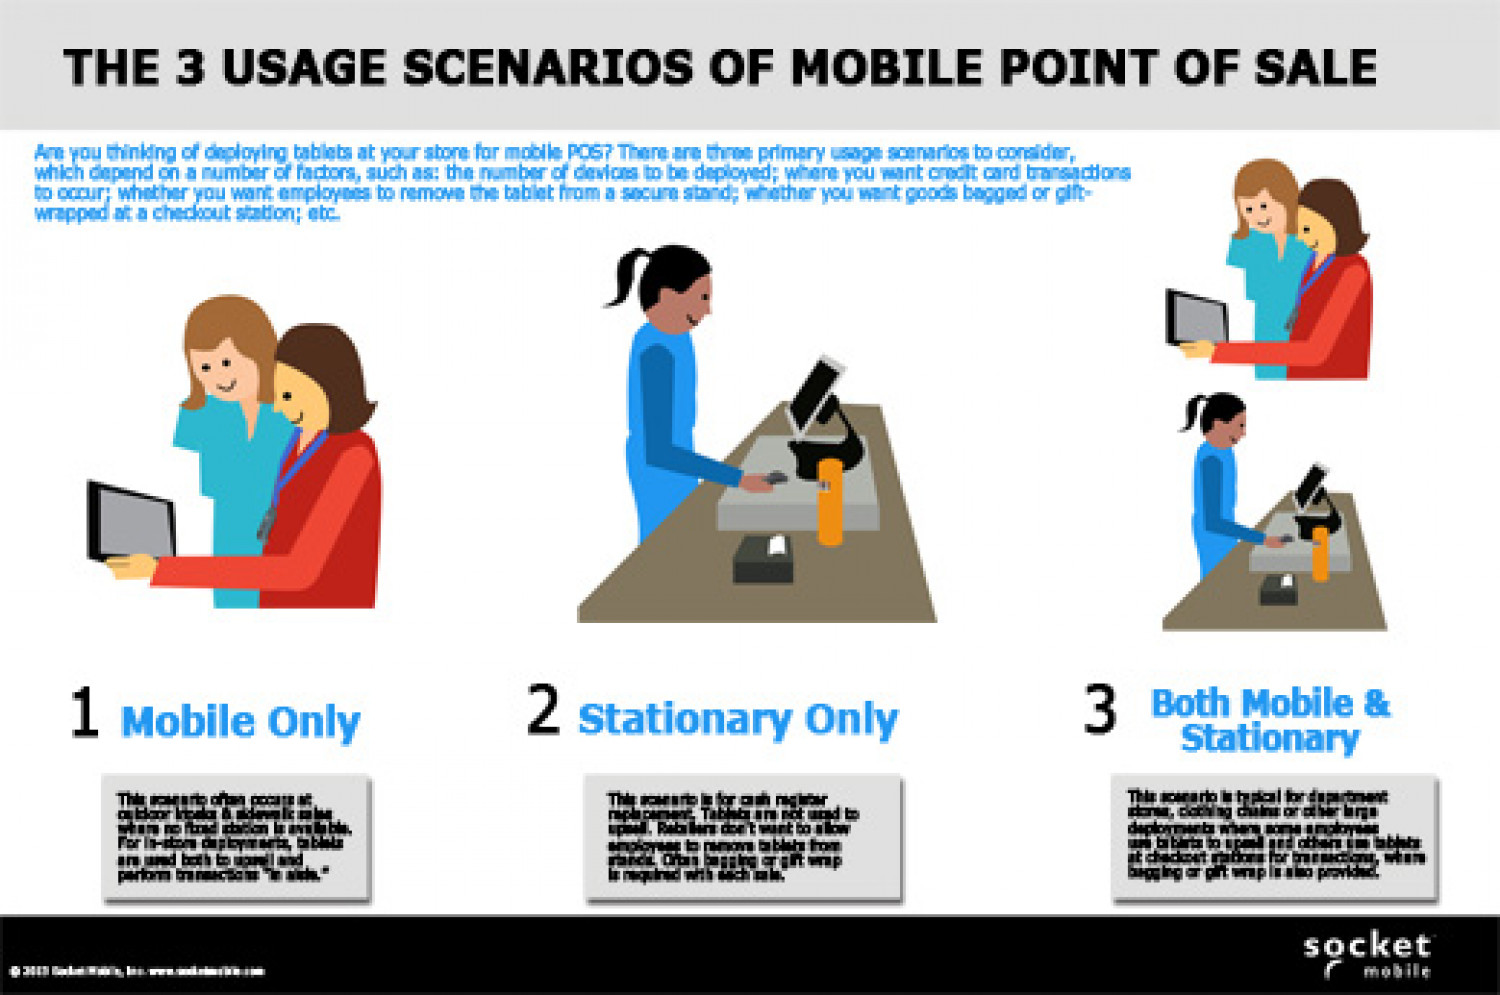 The 3 Usage Scenarios Of Mobile Point of Sale Infographic